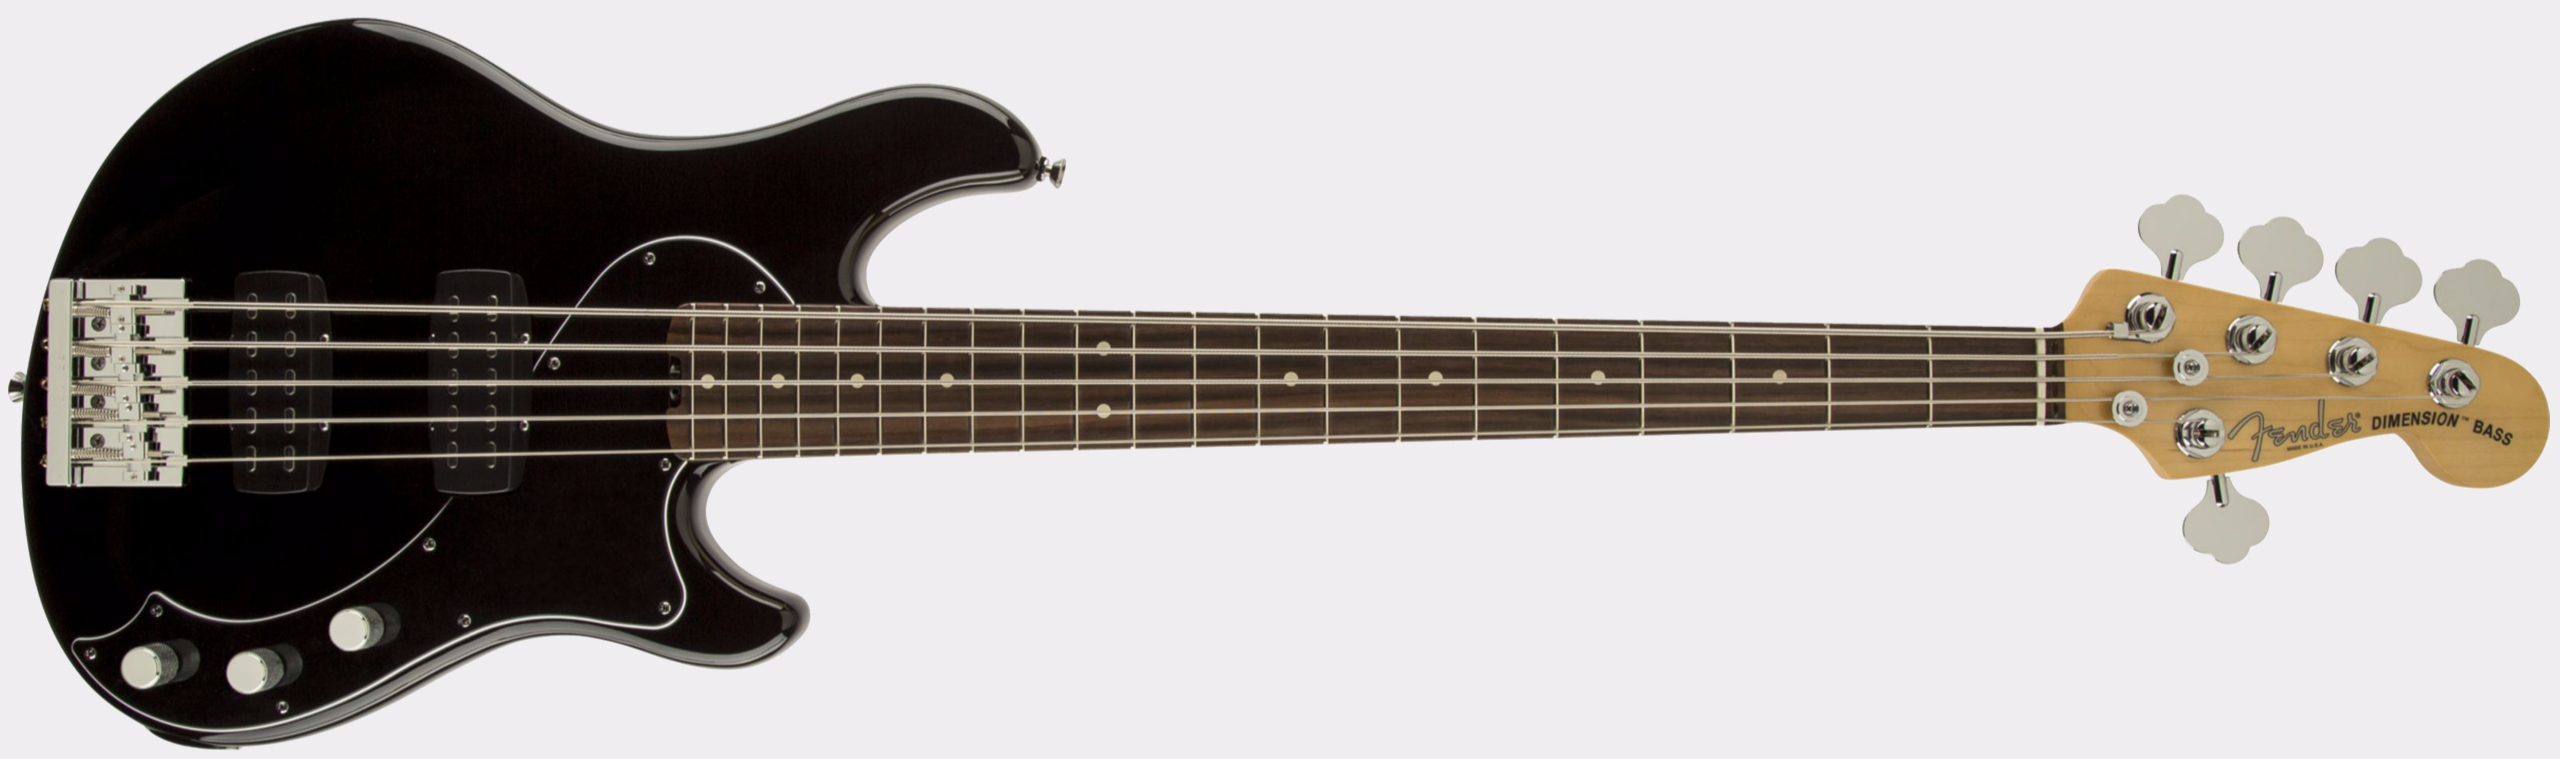 FENDER American Standard Dimension Bass V HH RW Black